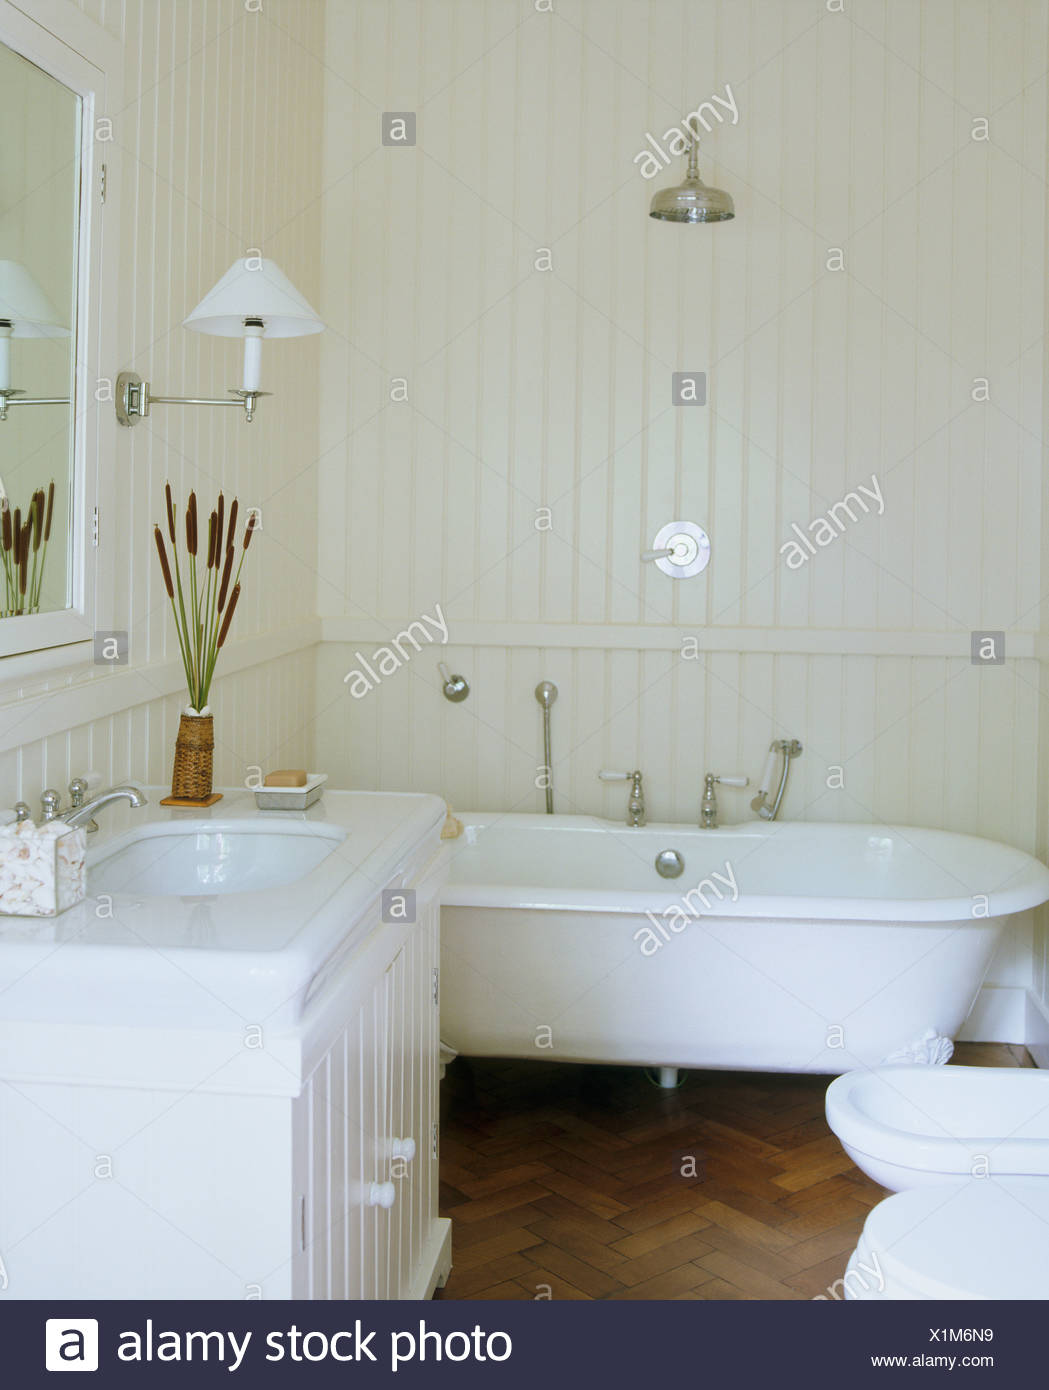 Paneling For Bathroom Chrome Shower Above Roll Top Bath In White Bathroom With White